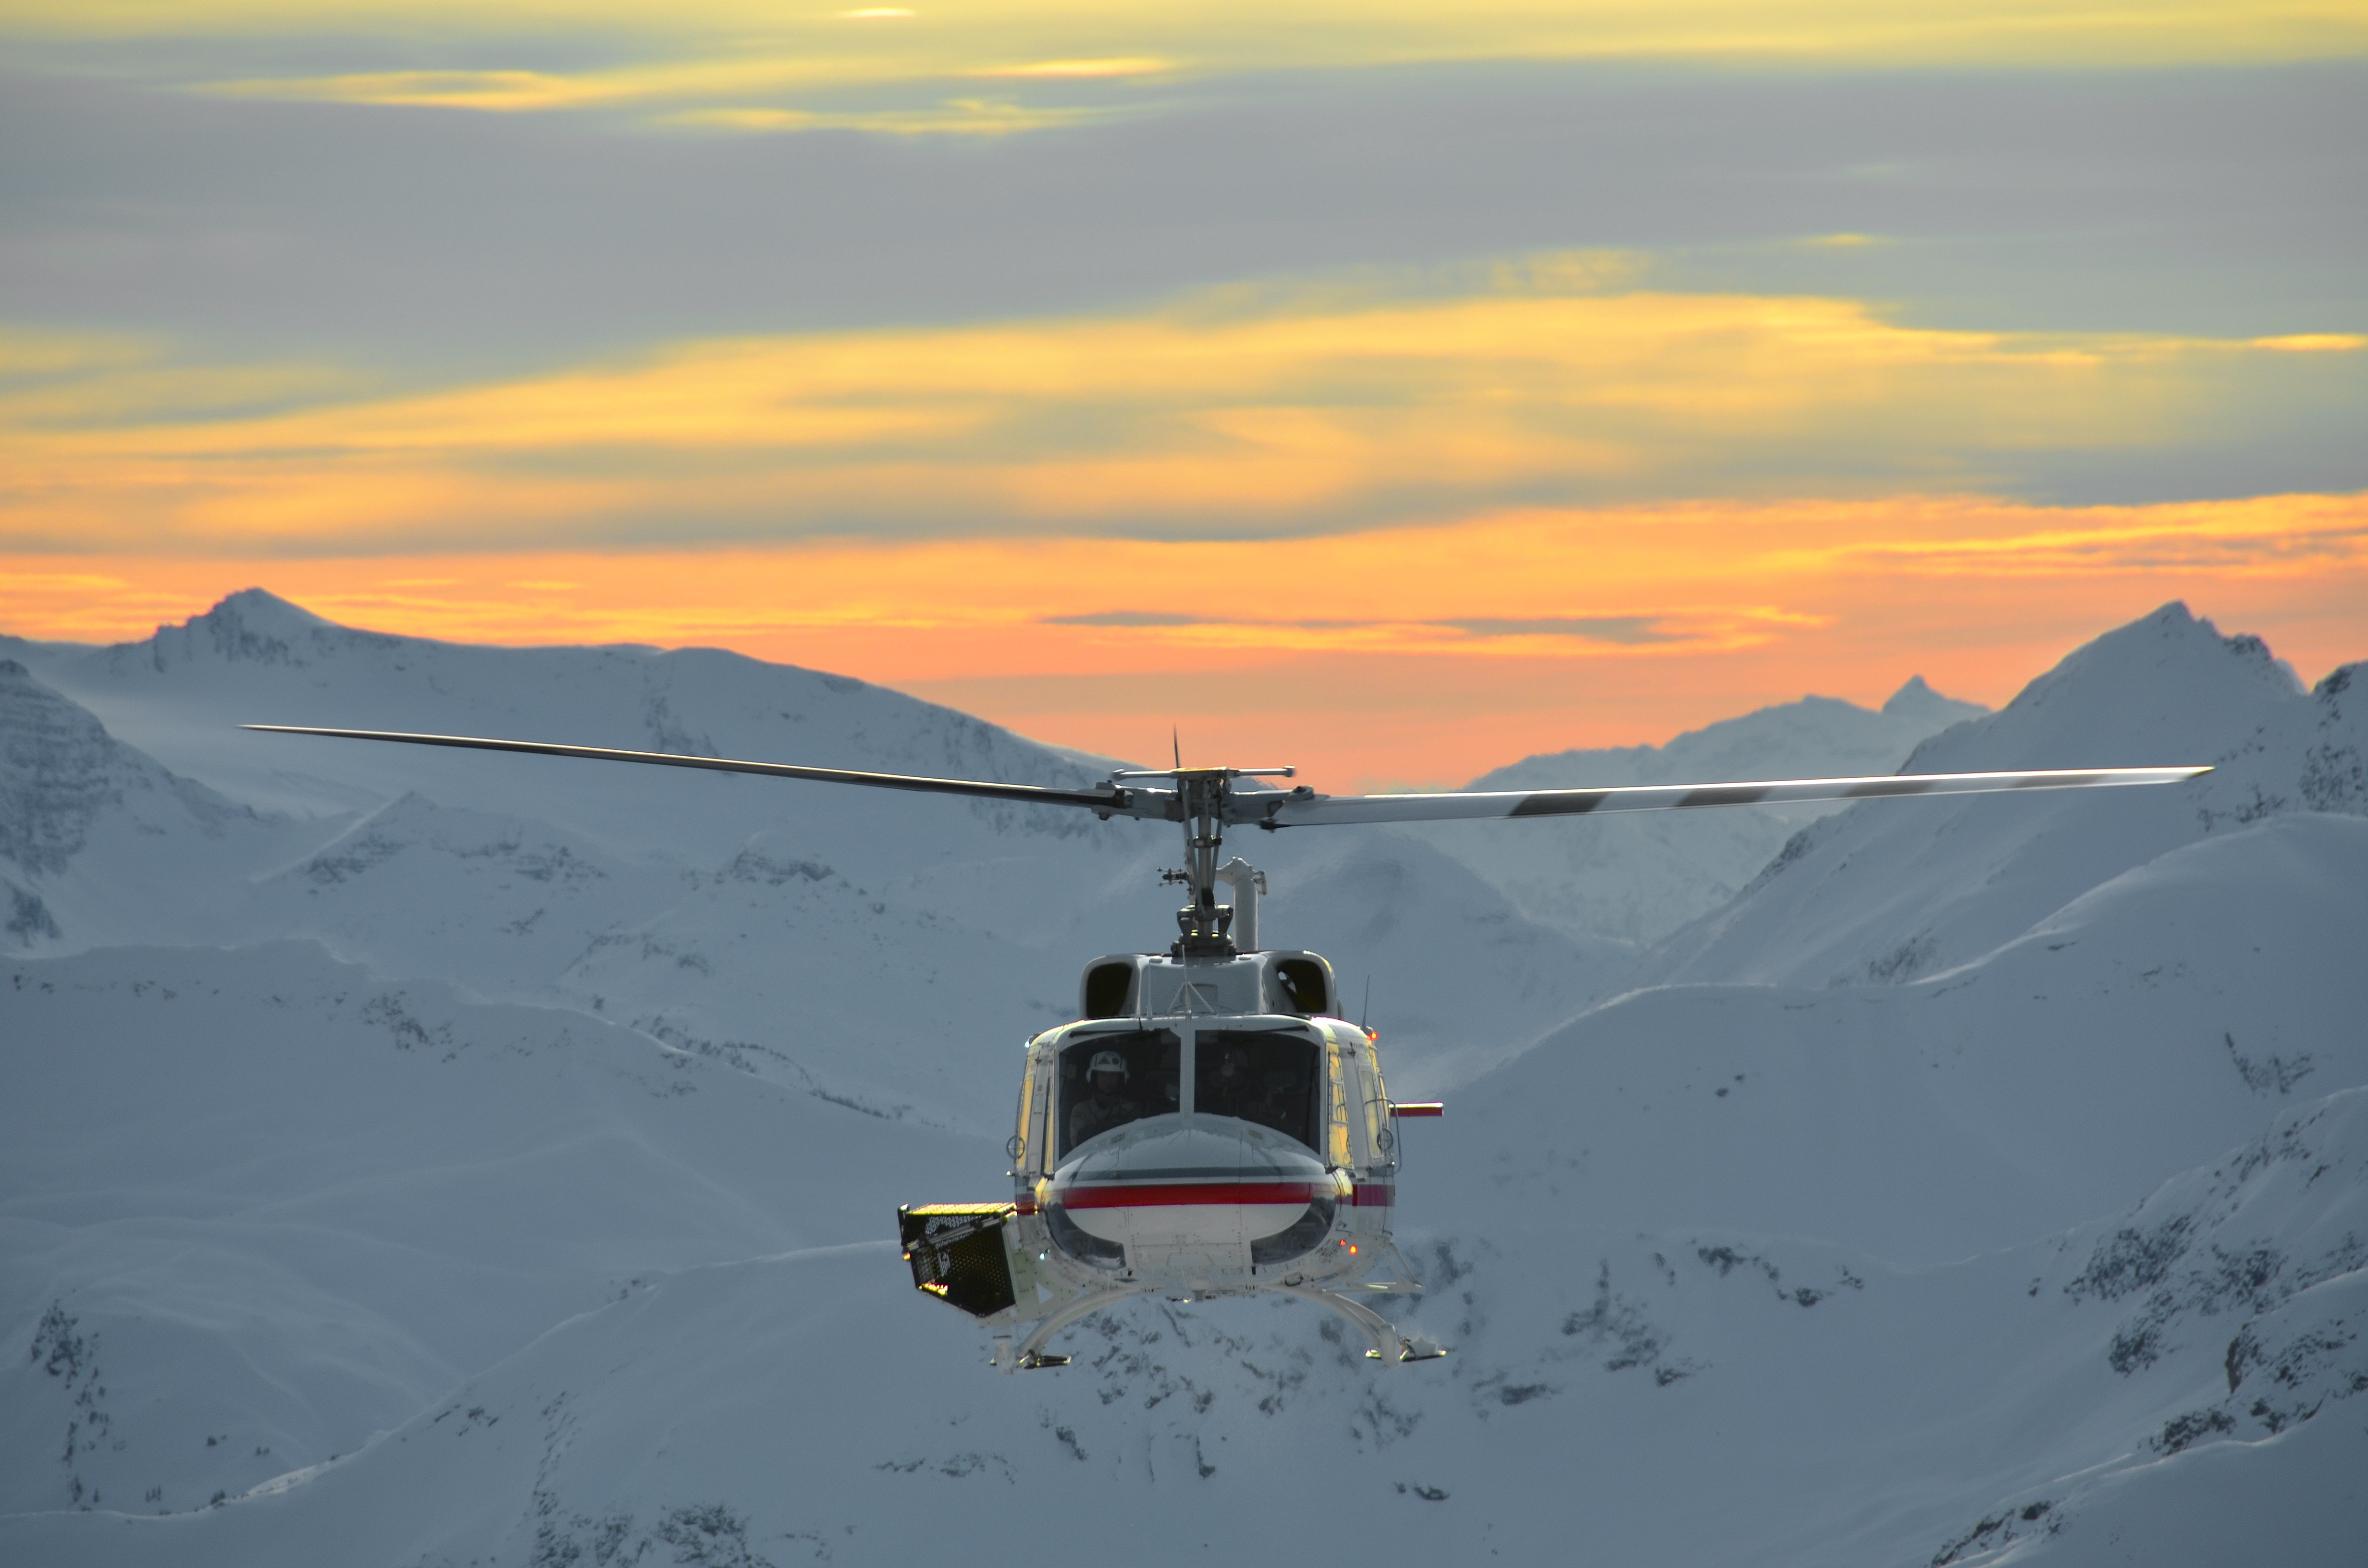 Helicopter with Sunset, Danny Stoffel